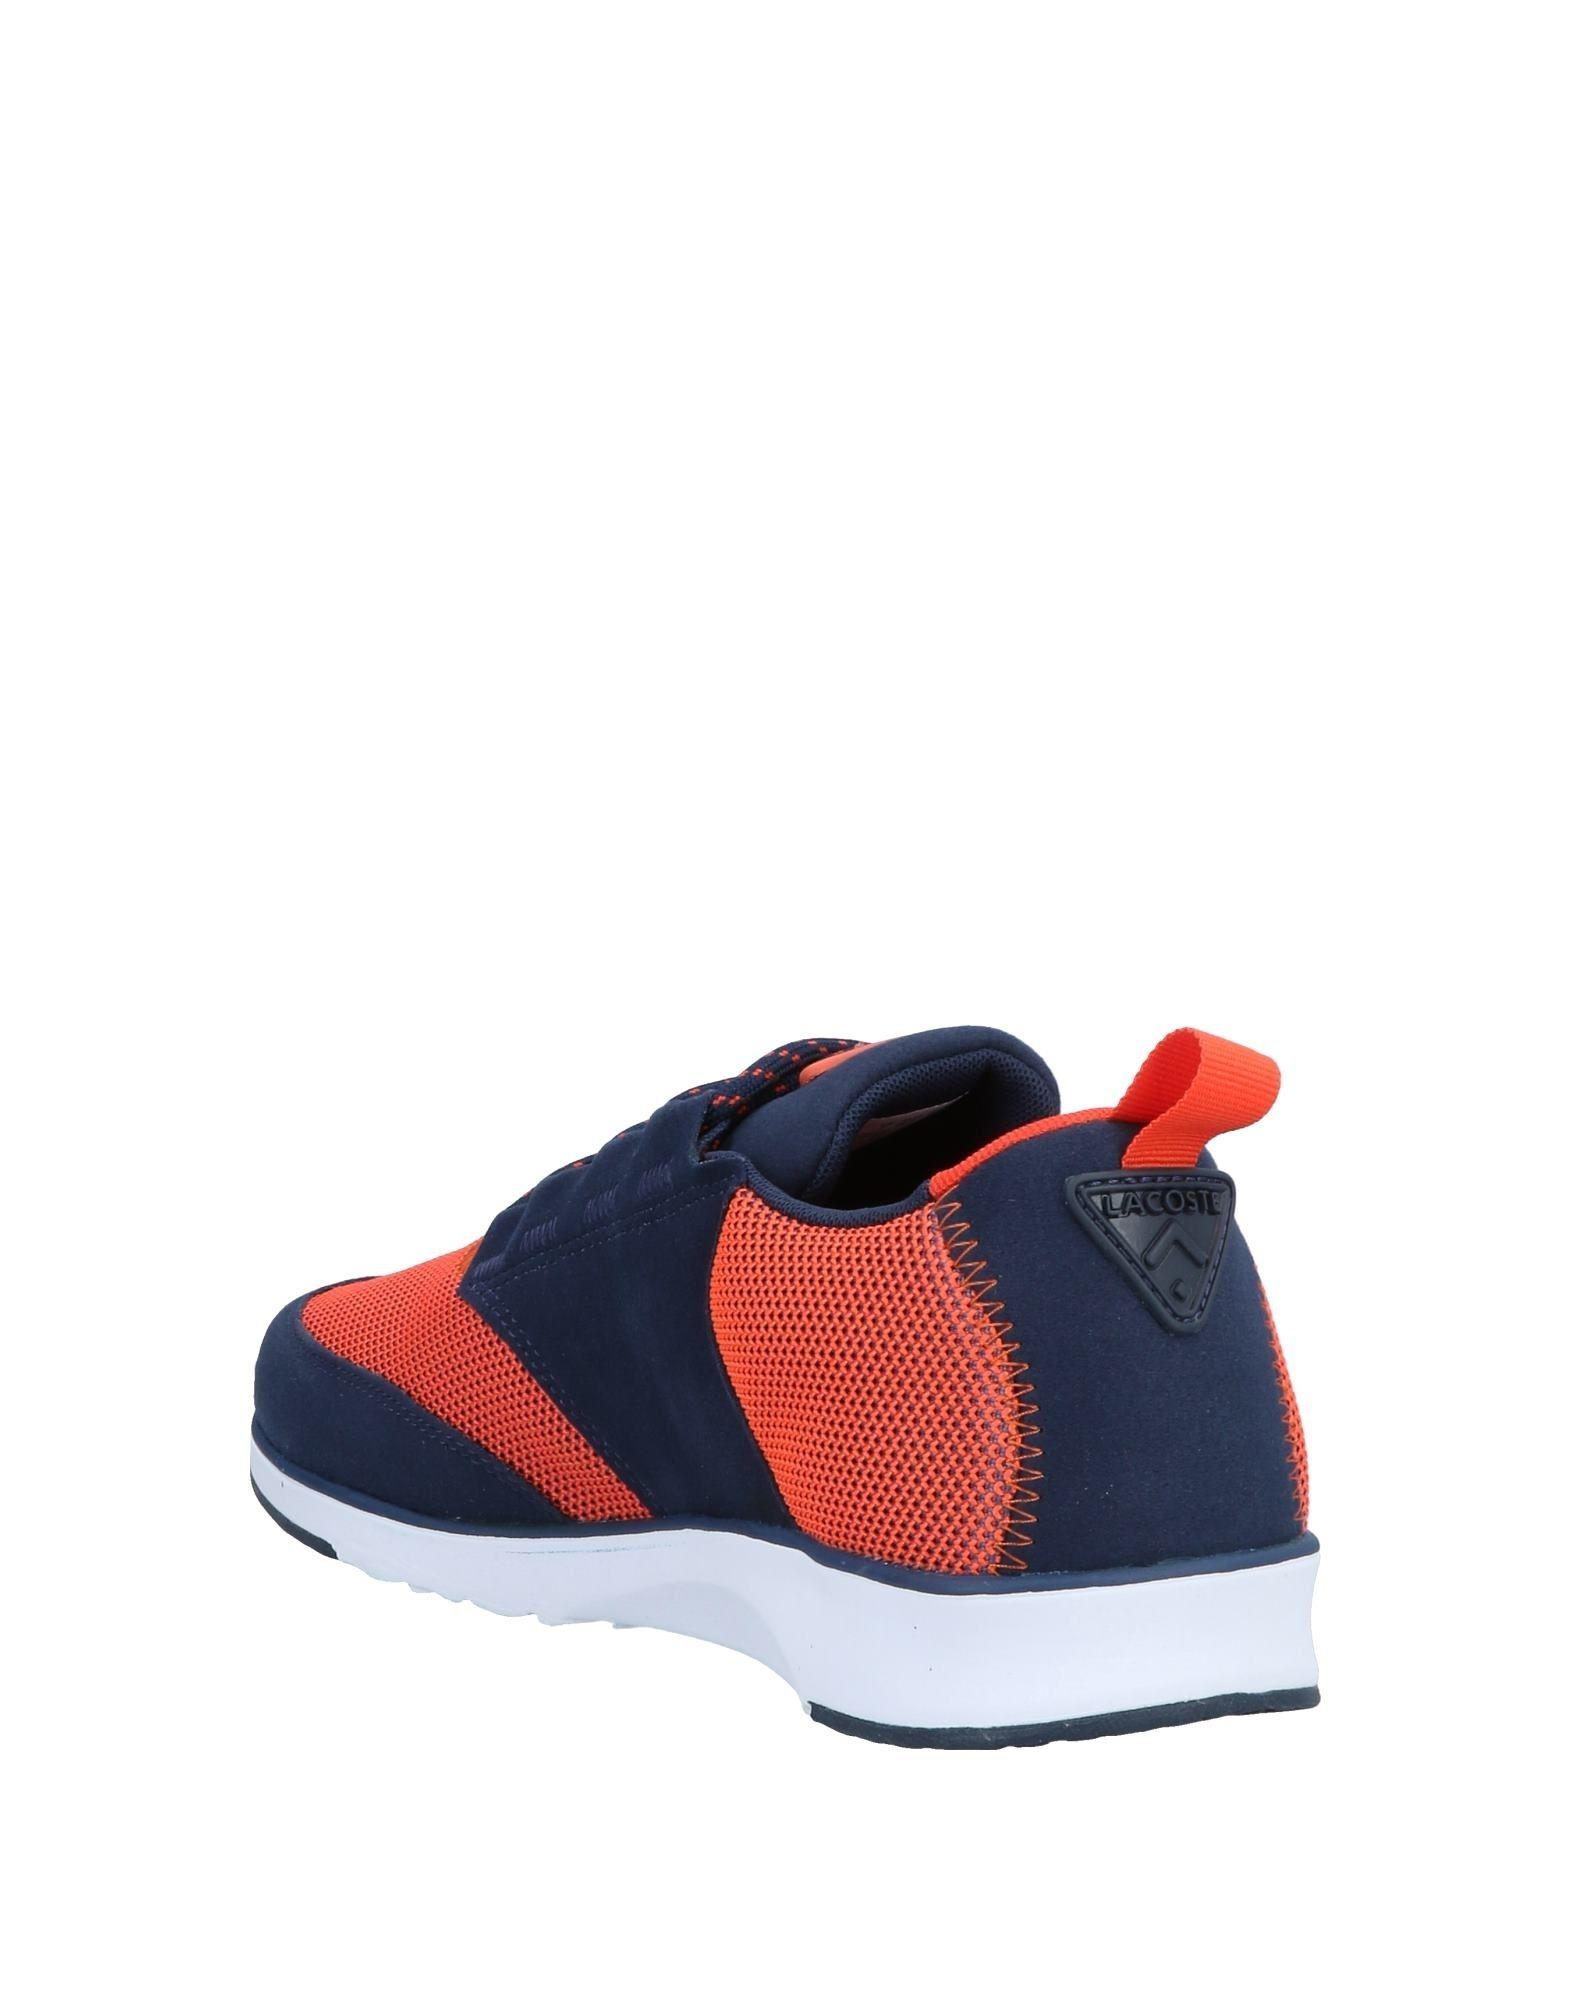 3f73af4f3 Lyst - Lacoste Low-tops   Sneakers in Blue for Men